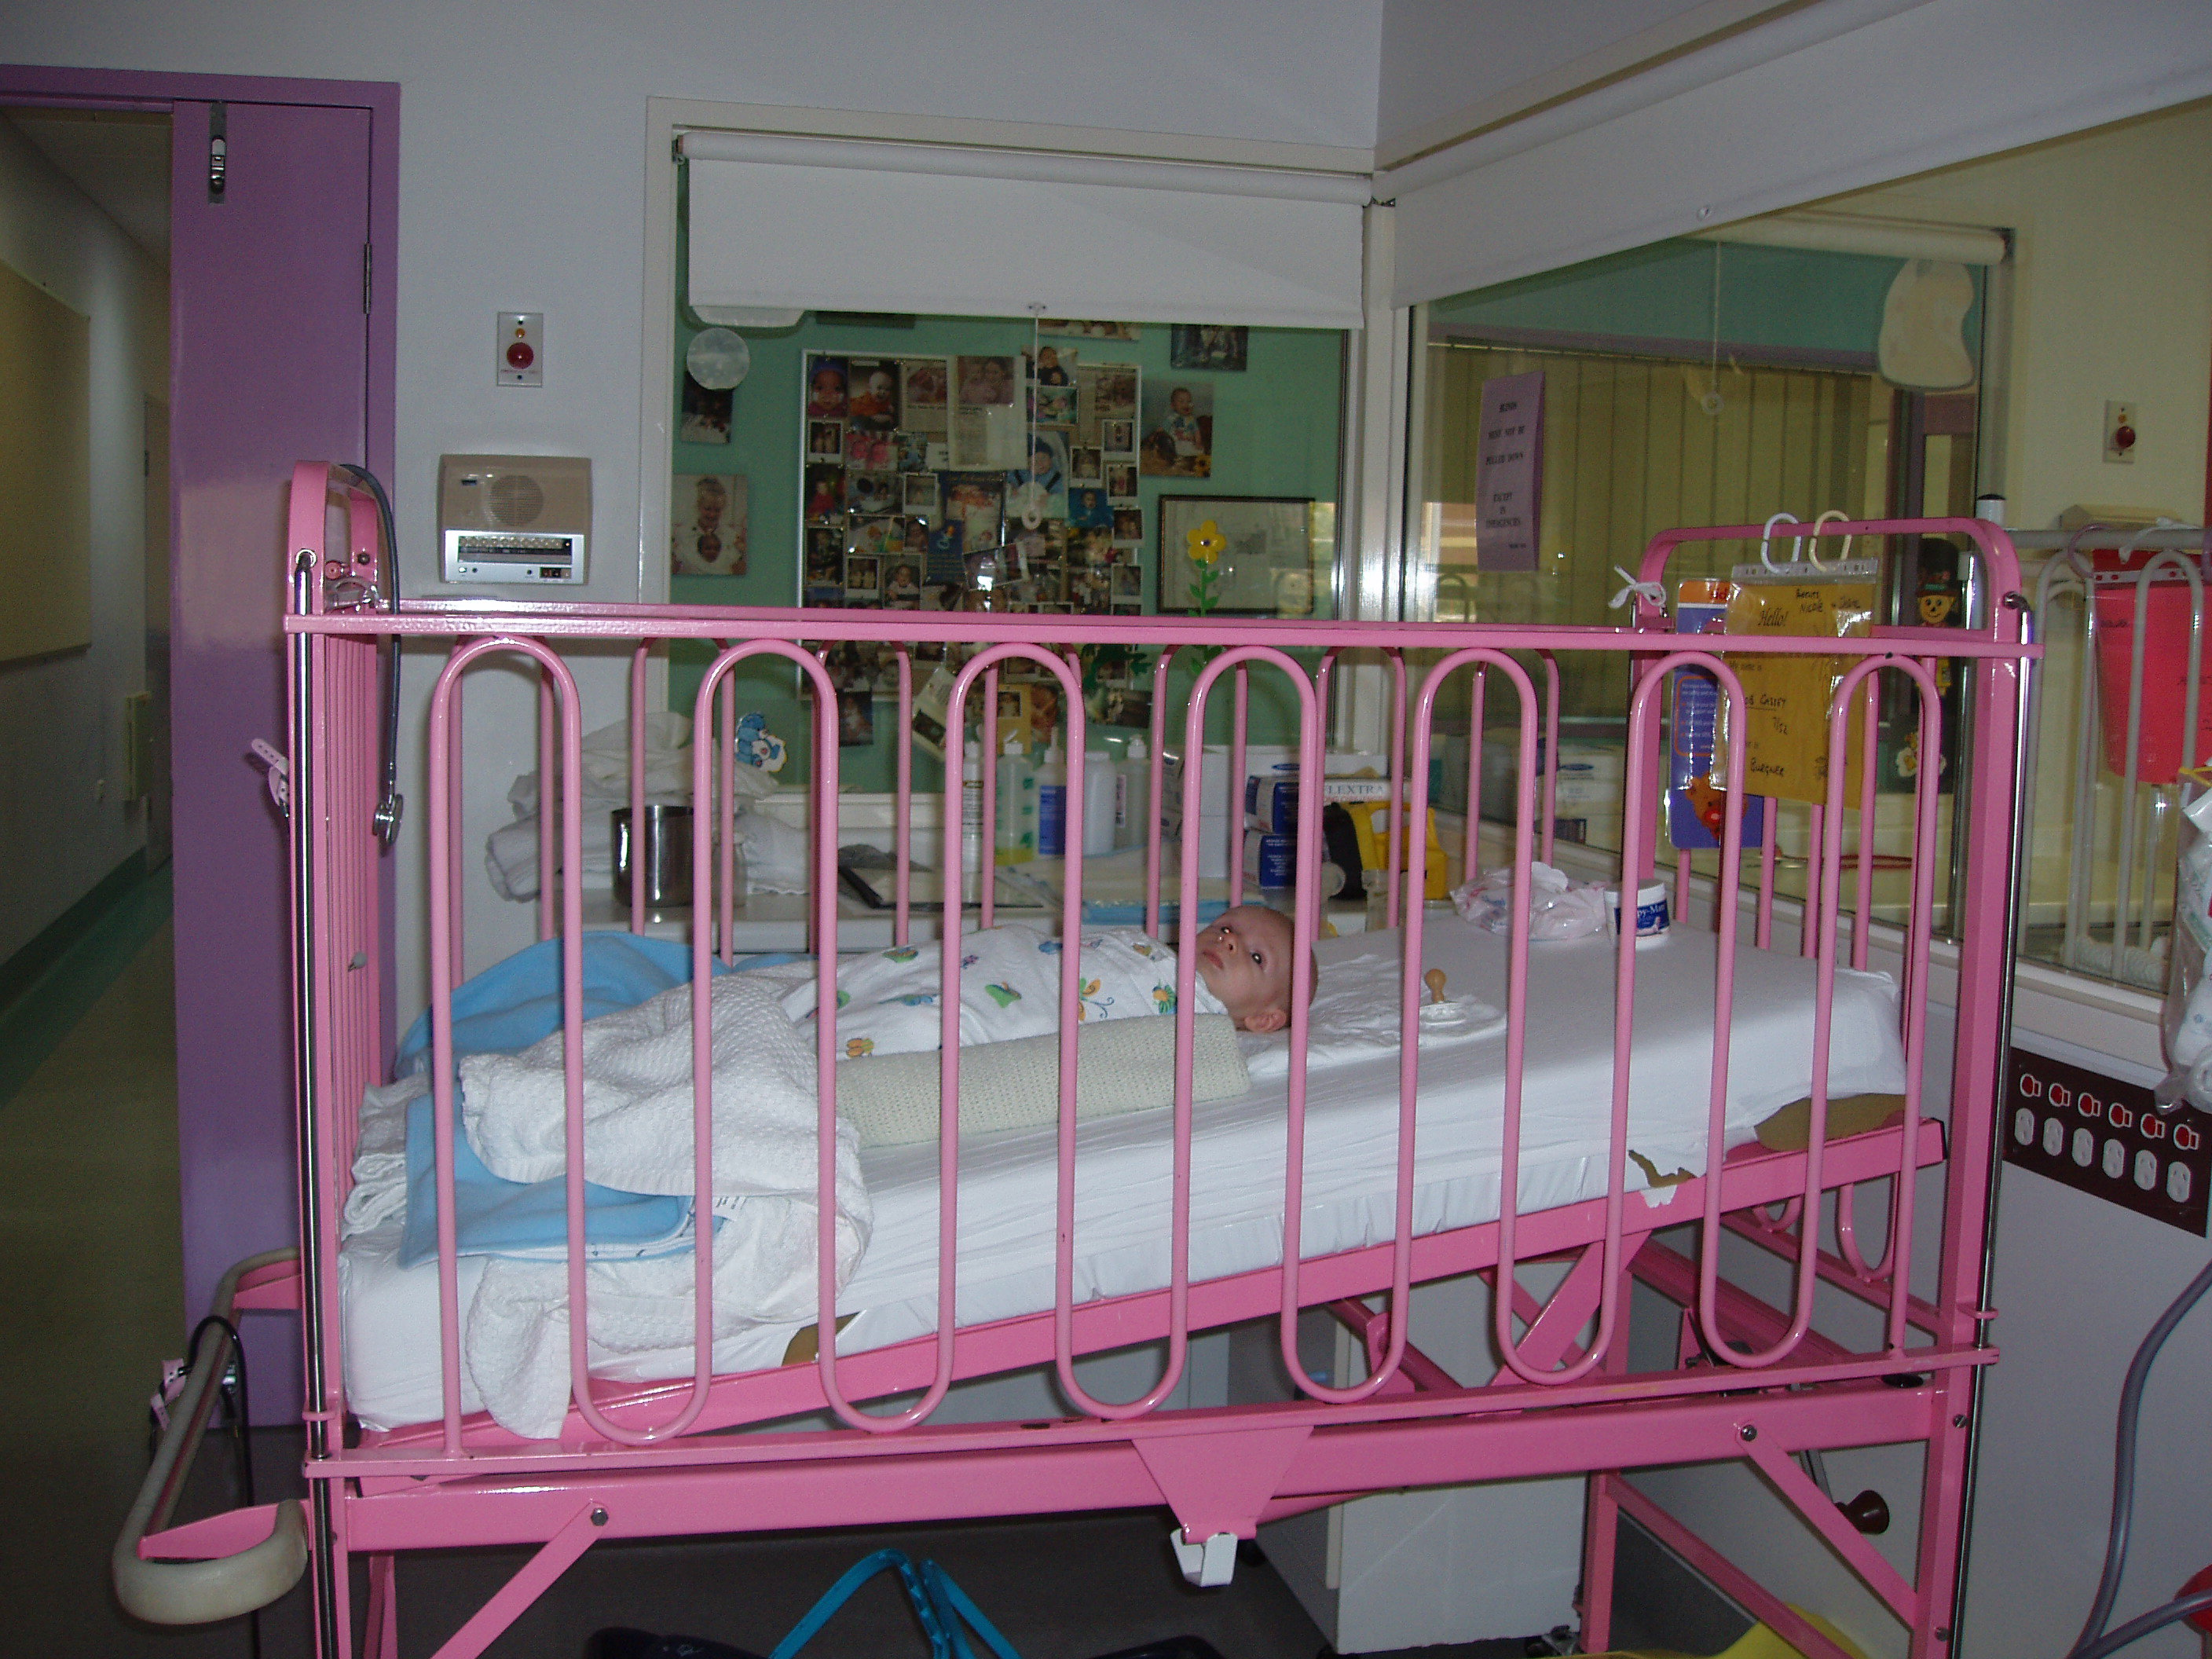 Included crib to lessen baby reflux.